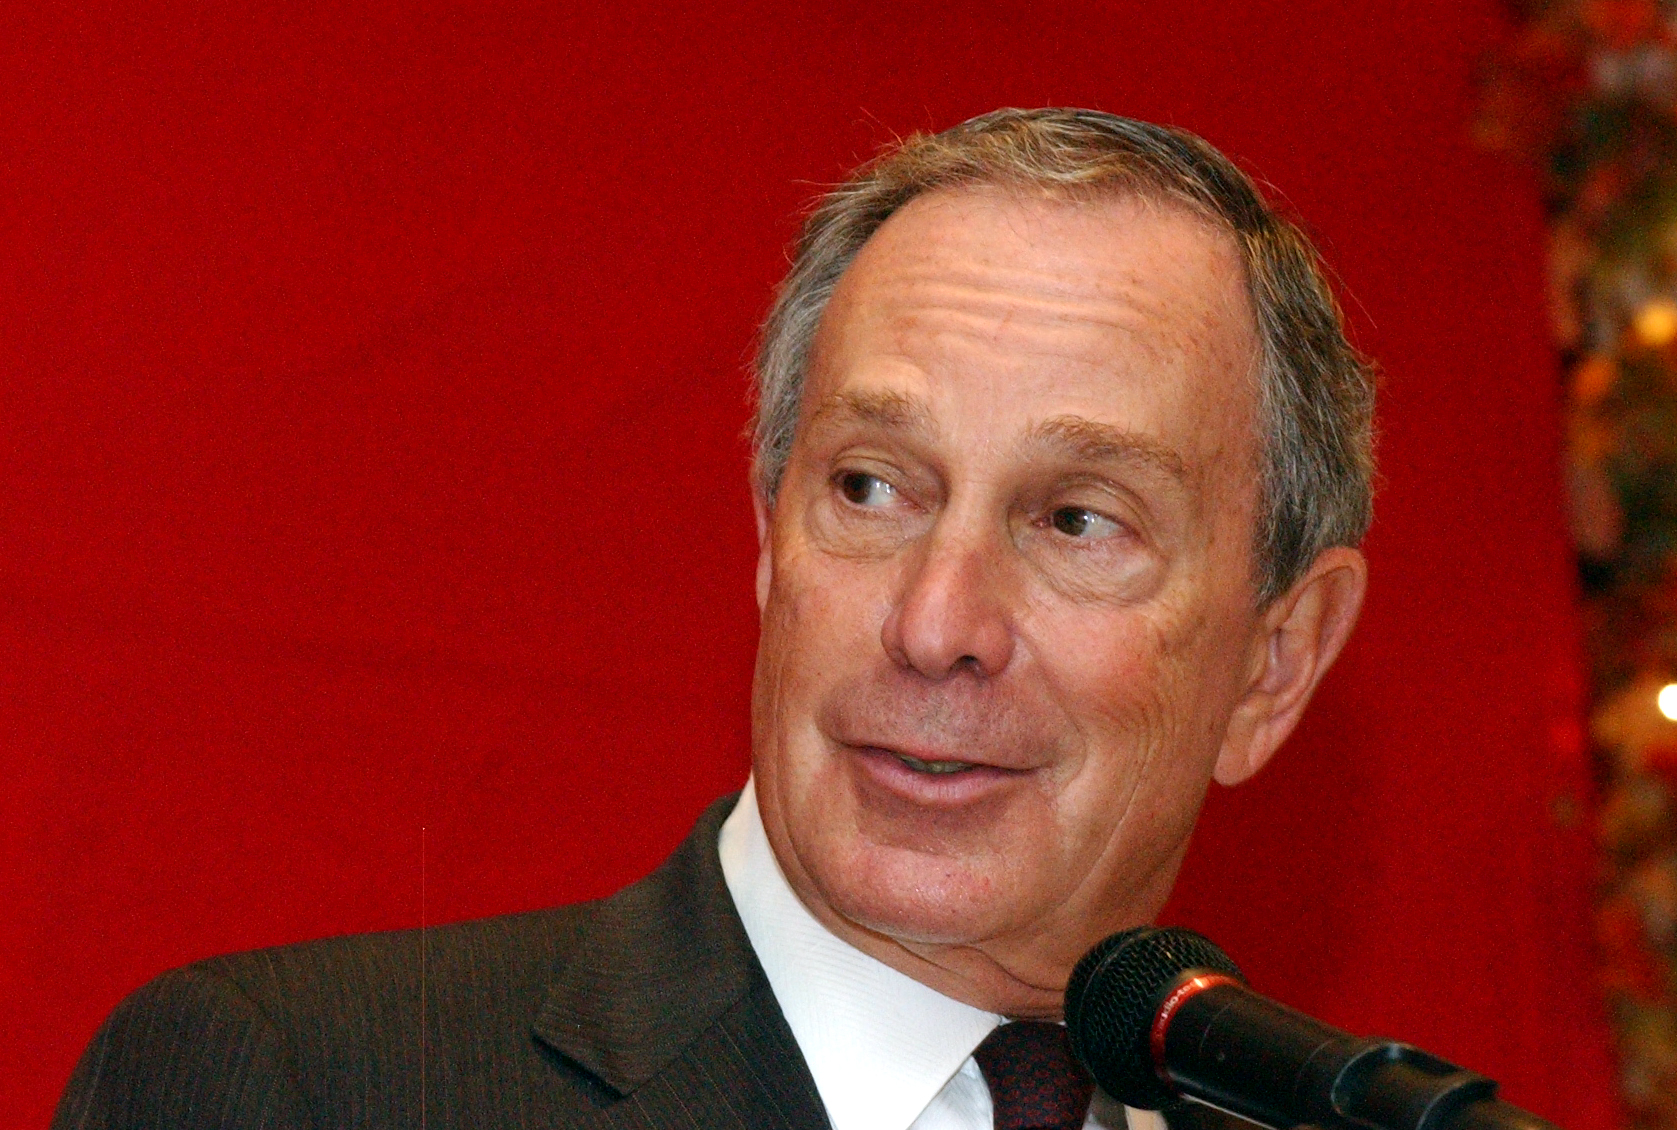 Watch Mayor Bloomberg from this week's New York Tech Meetup